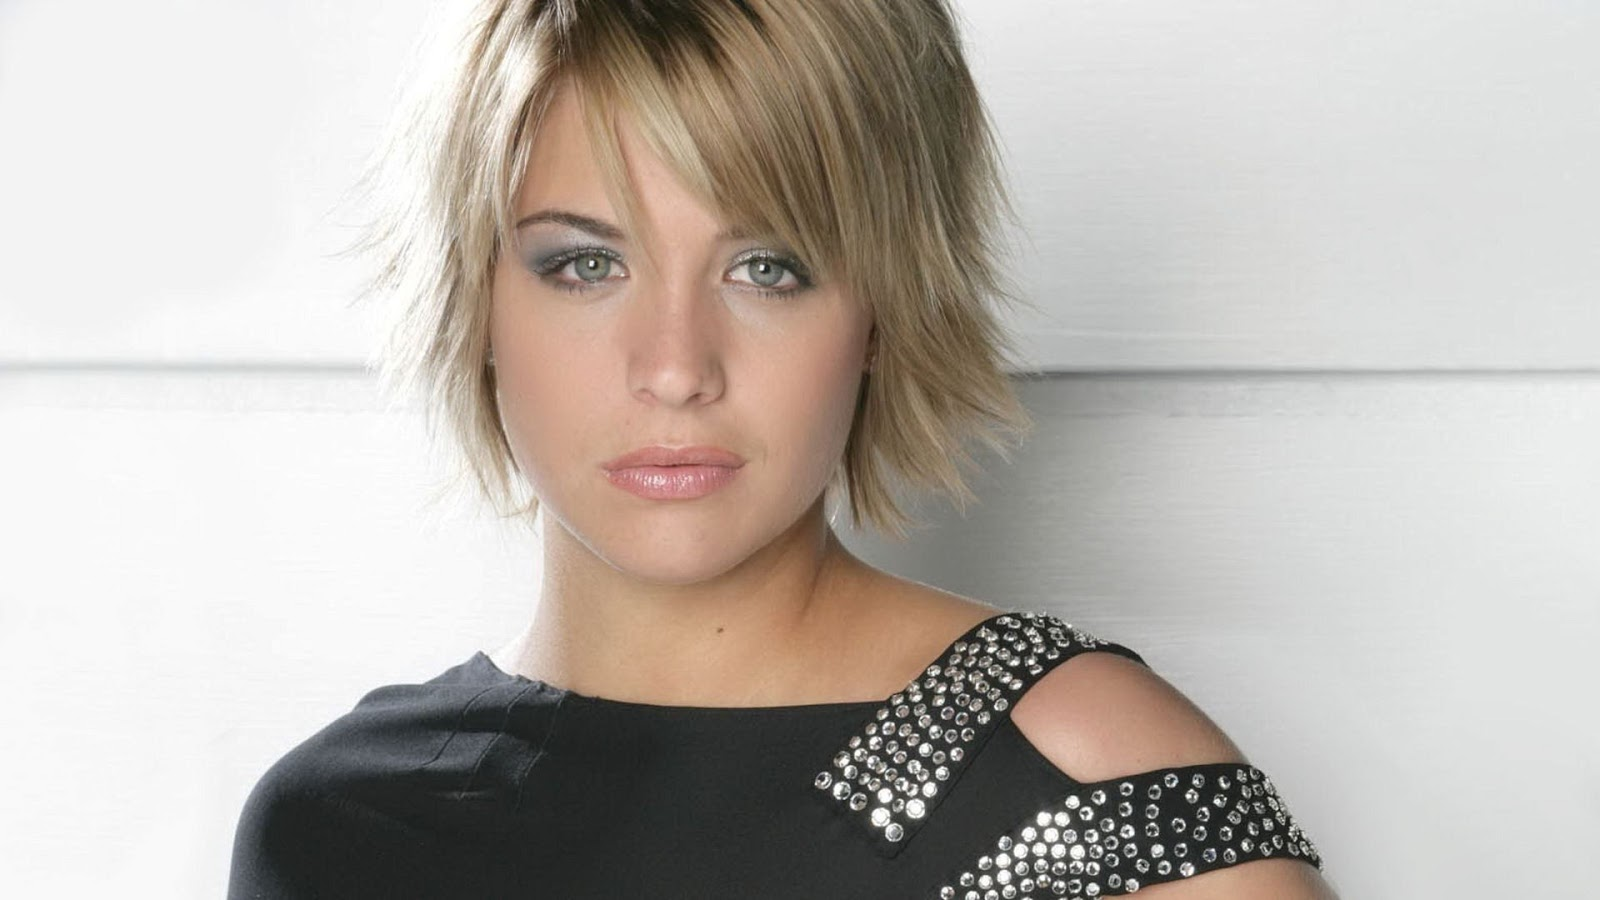 Gemma Atkinson Model Wallpaper